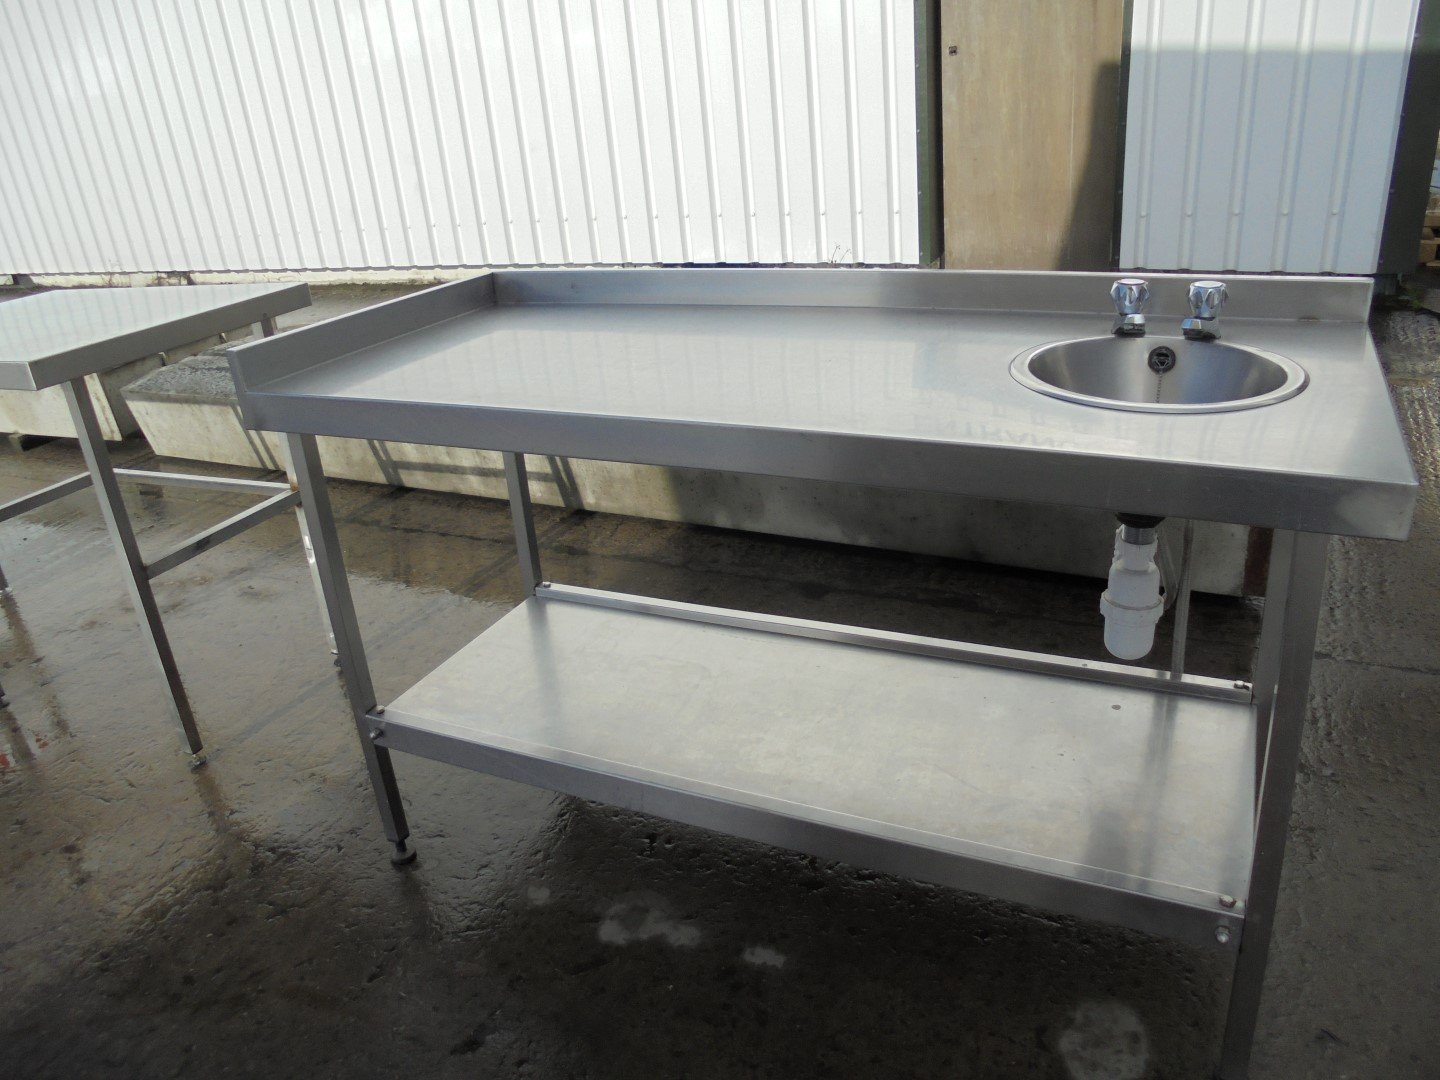 used stainless steel hand sink table 1 5 meter work kitchen food wash up prep dish tap 150cmw x 65cmd x 87cmh